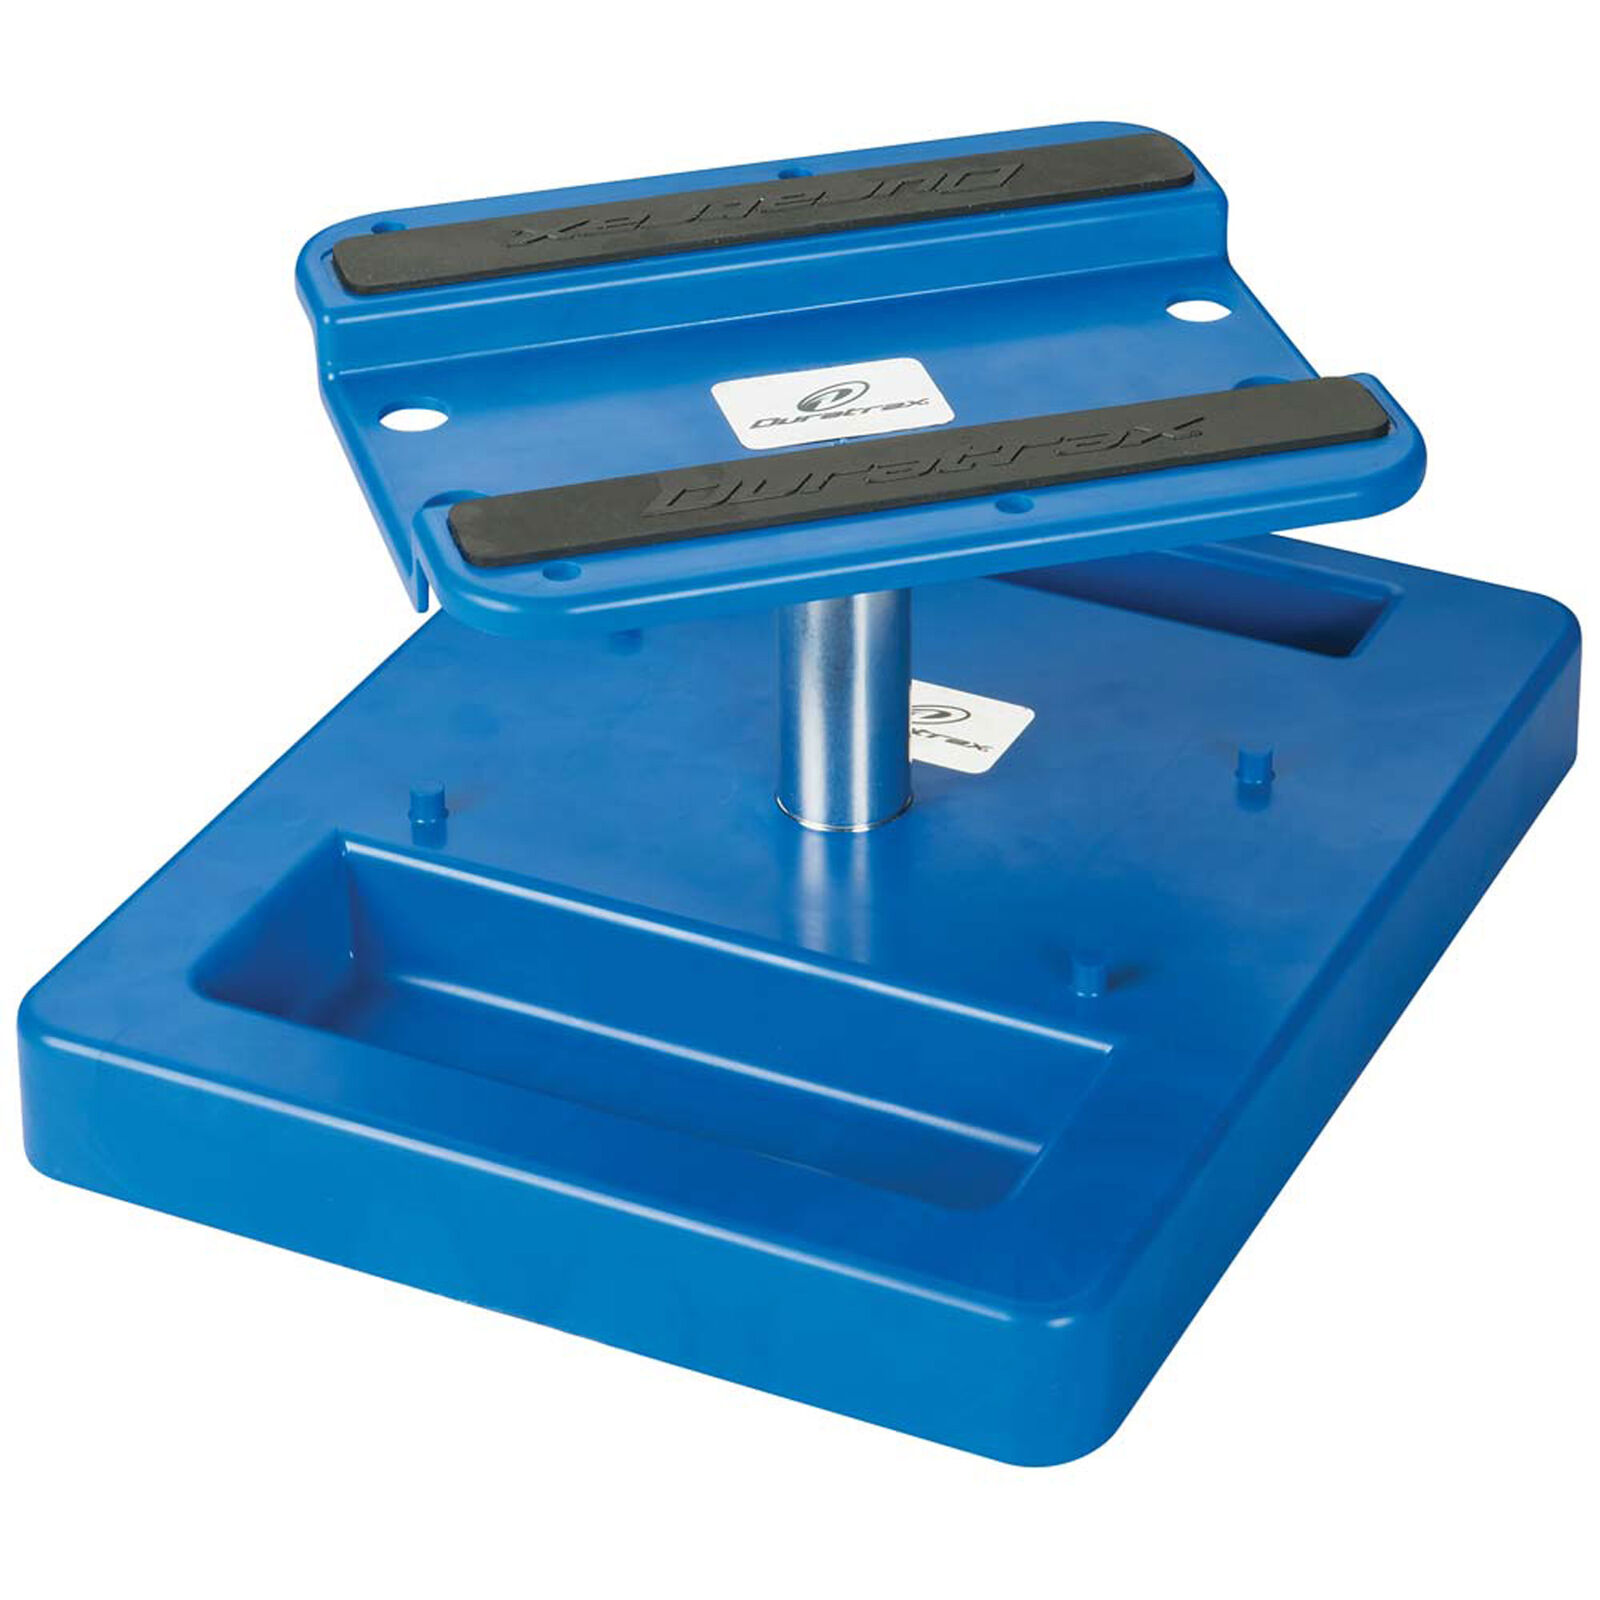 Pit Tech Deluxe Truck Stand, Blue